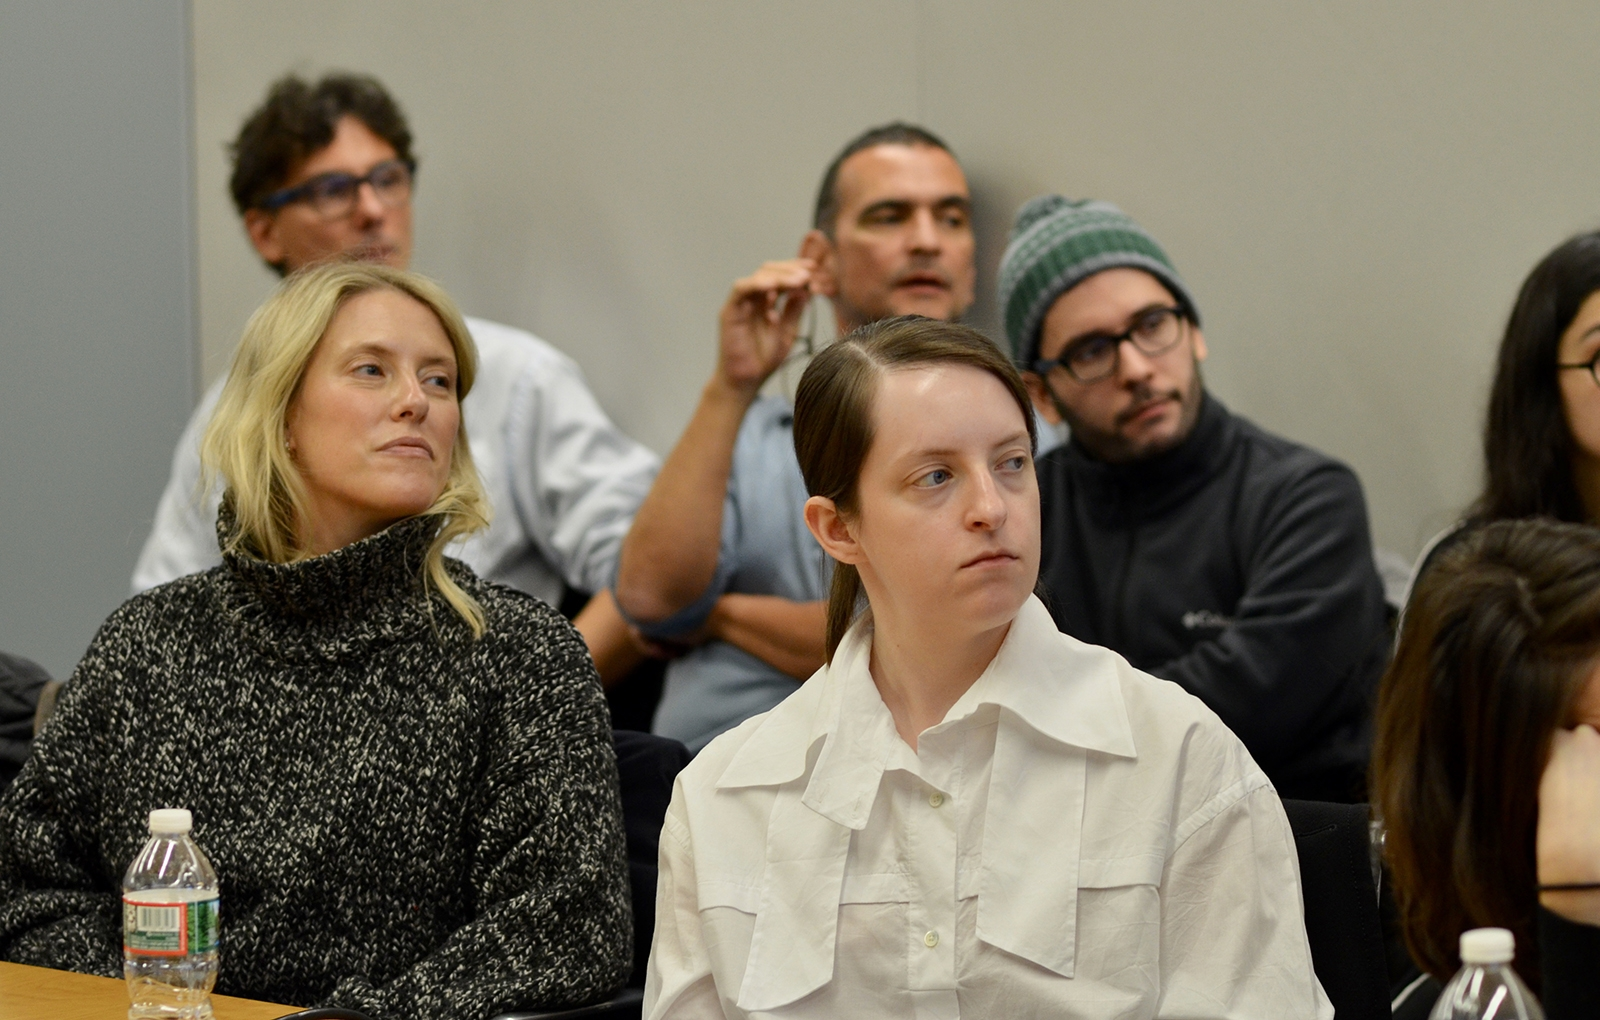 The BrazilLAB audience.